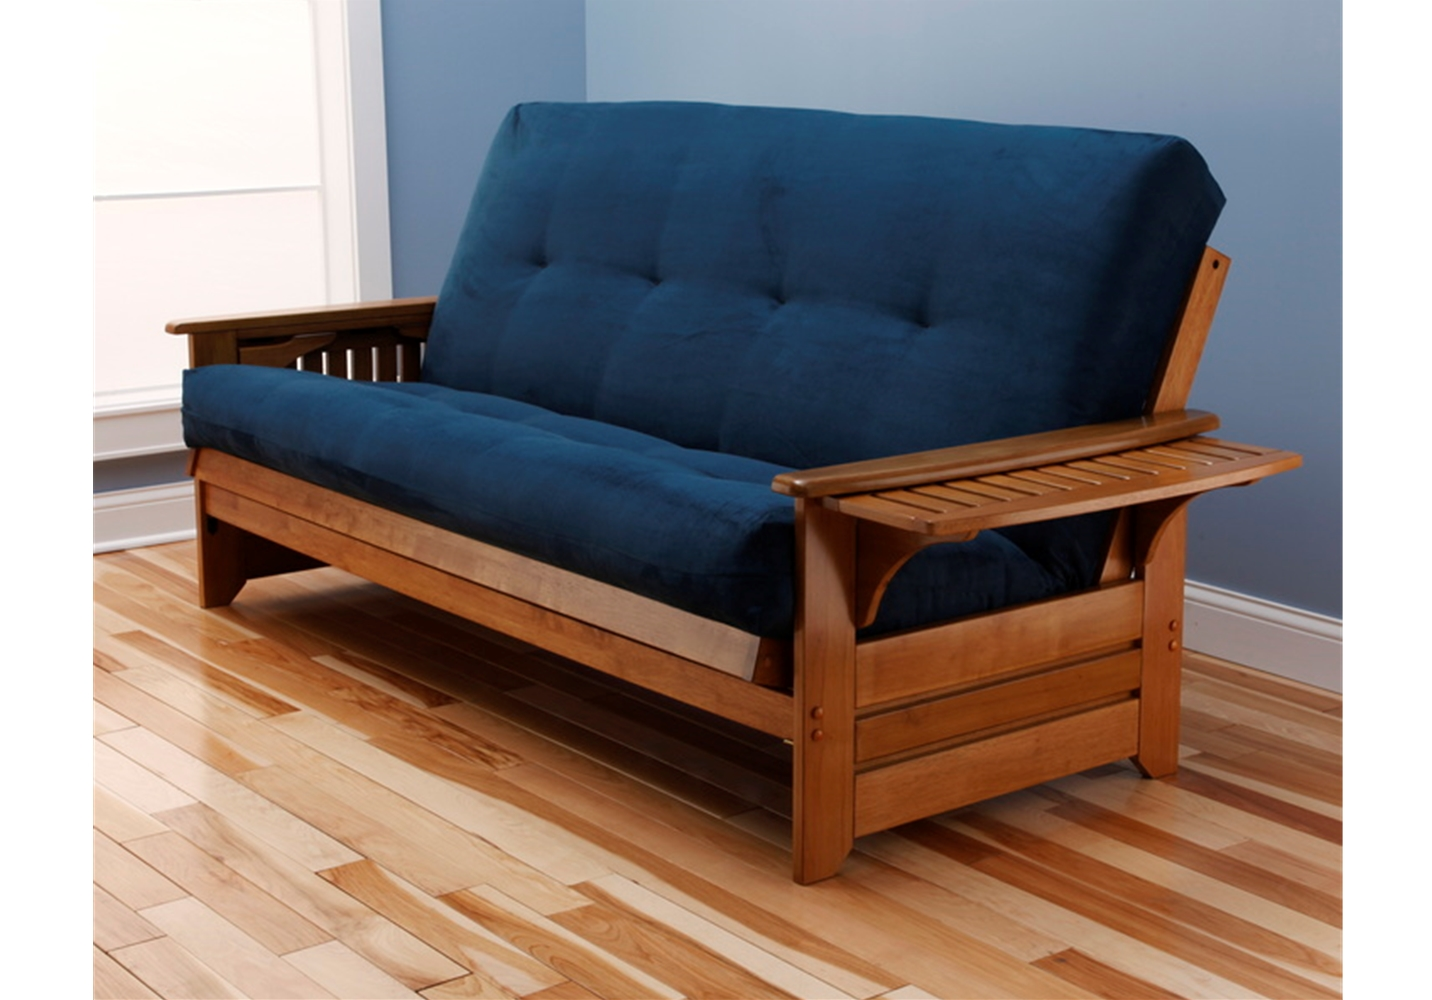 Tray Arm Ernut Full Futon Frame With Mattress In Suede Navy